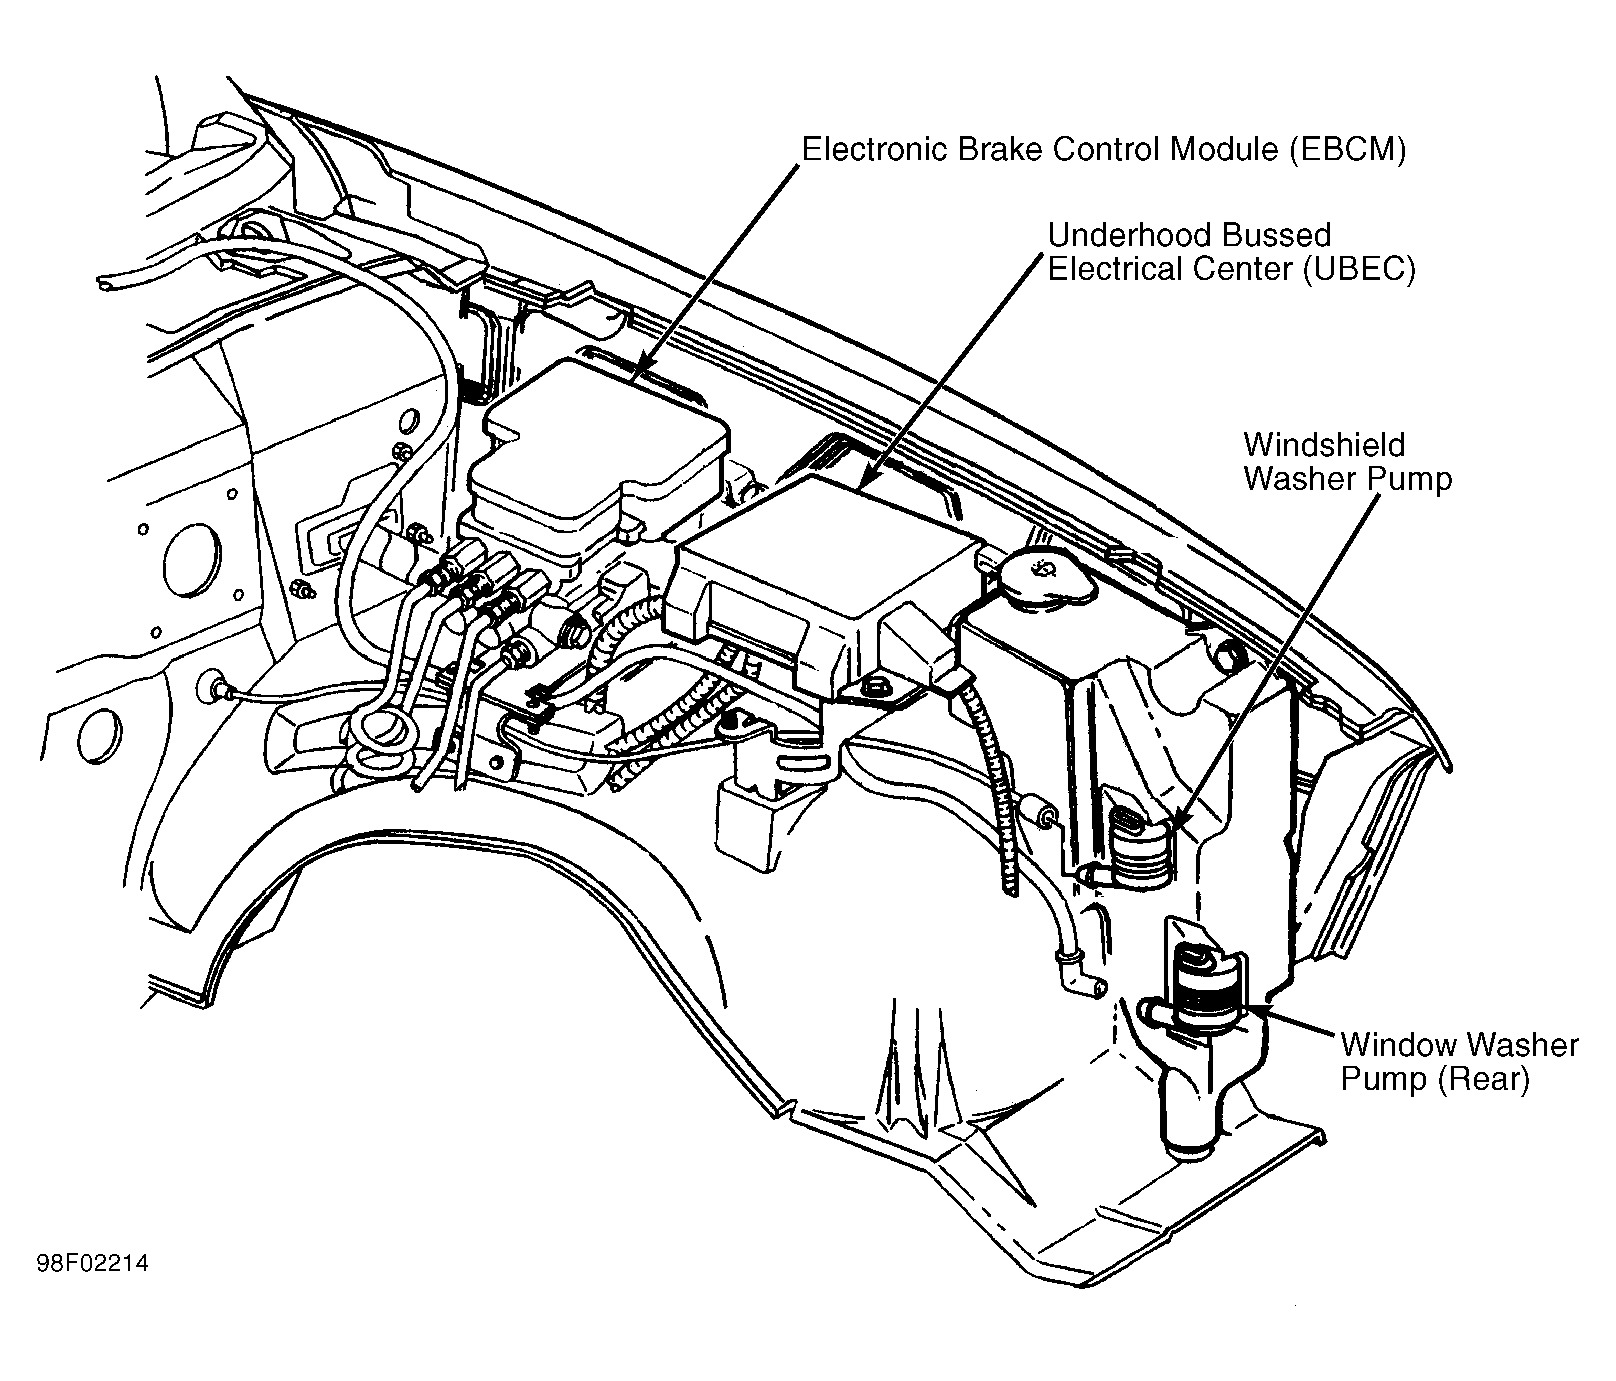 Gmc Jimmy 4x4 Parts Diagram • Wiring Diagram For Free